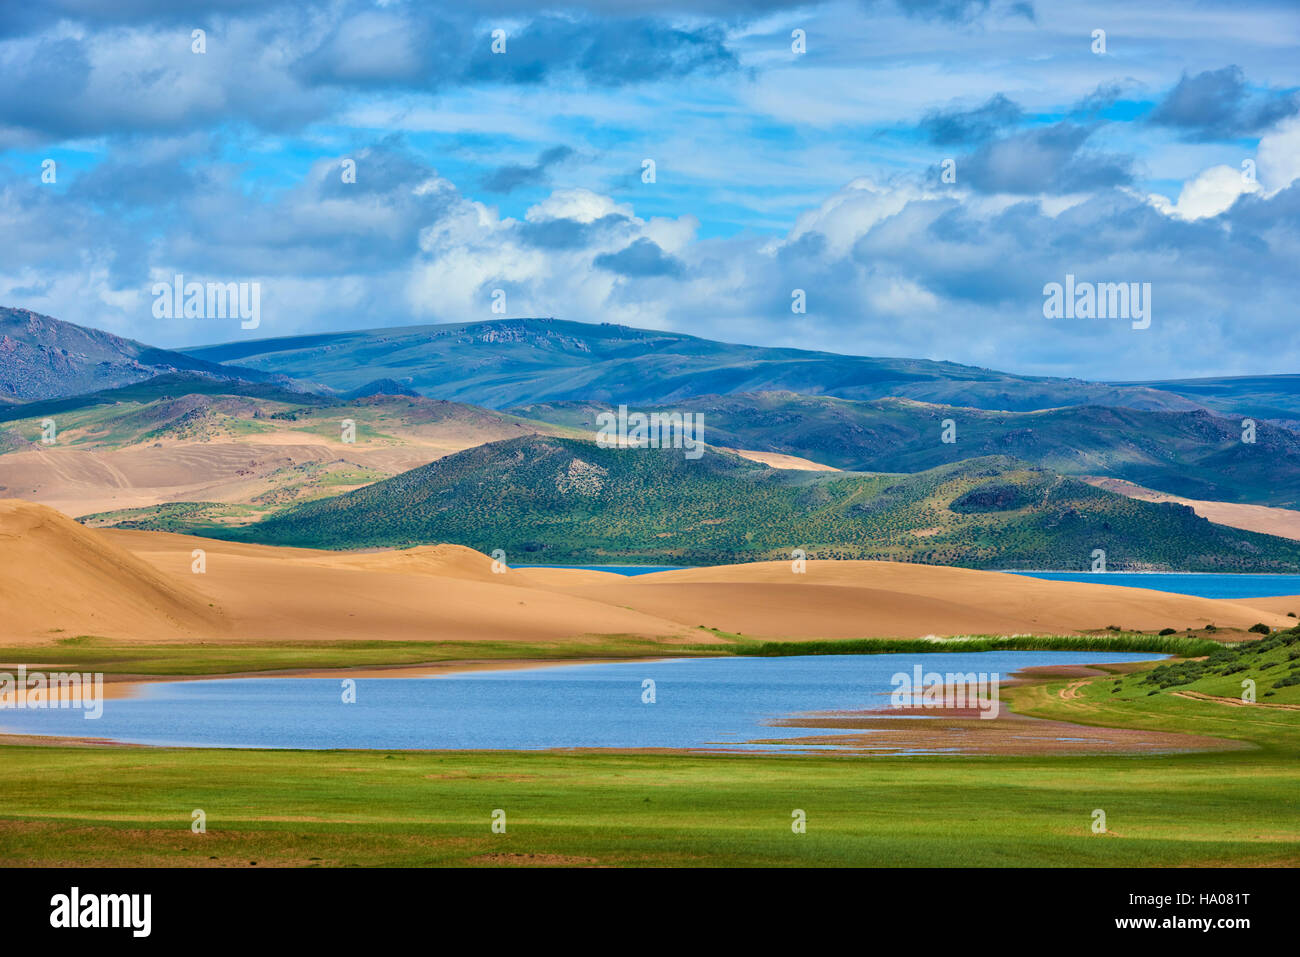 La Mongolie, province Zavkhan, Khar Nuur lake Photo Stock